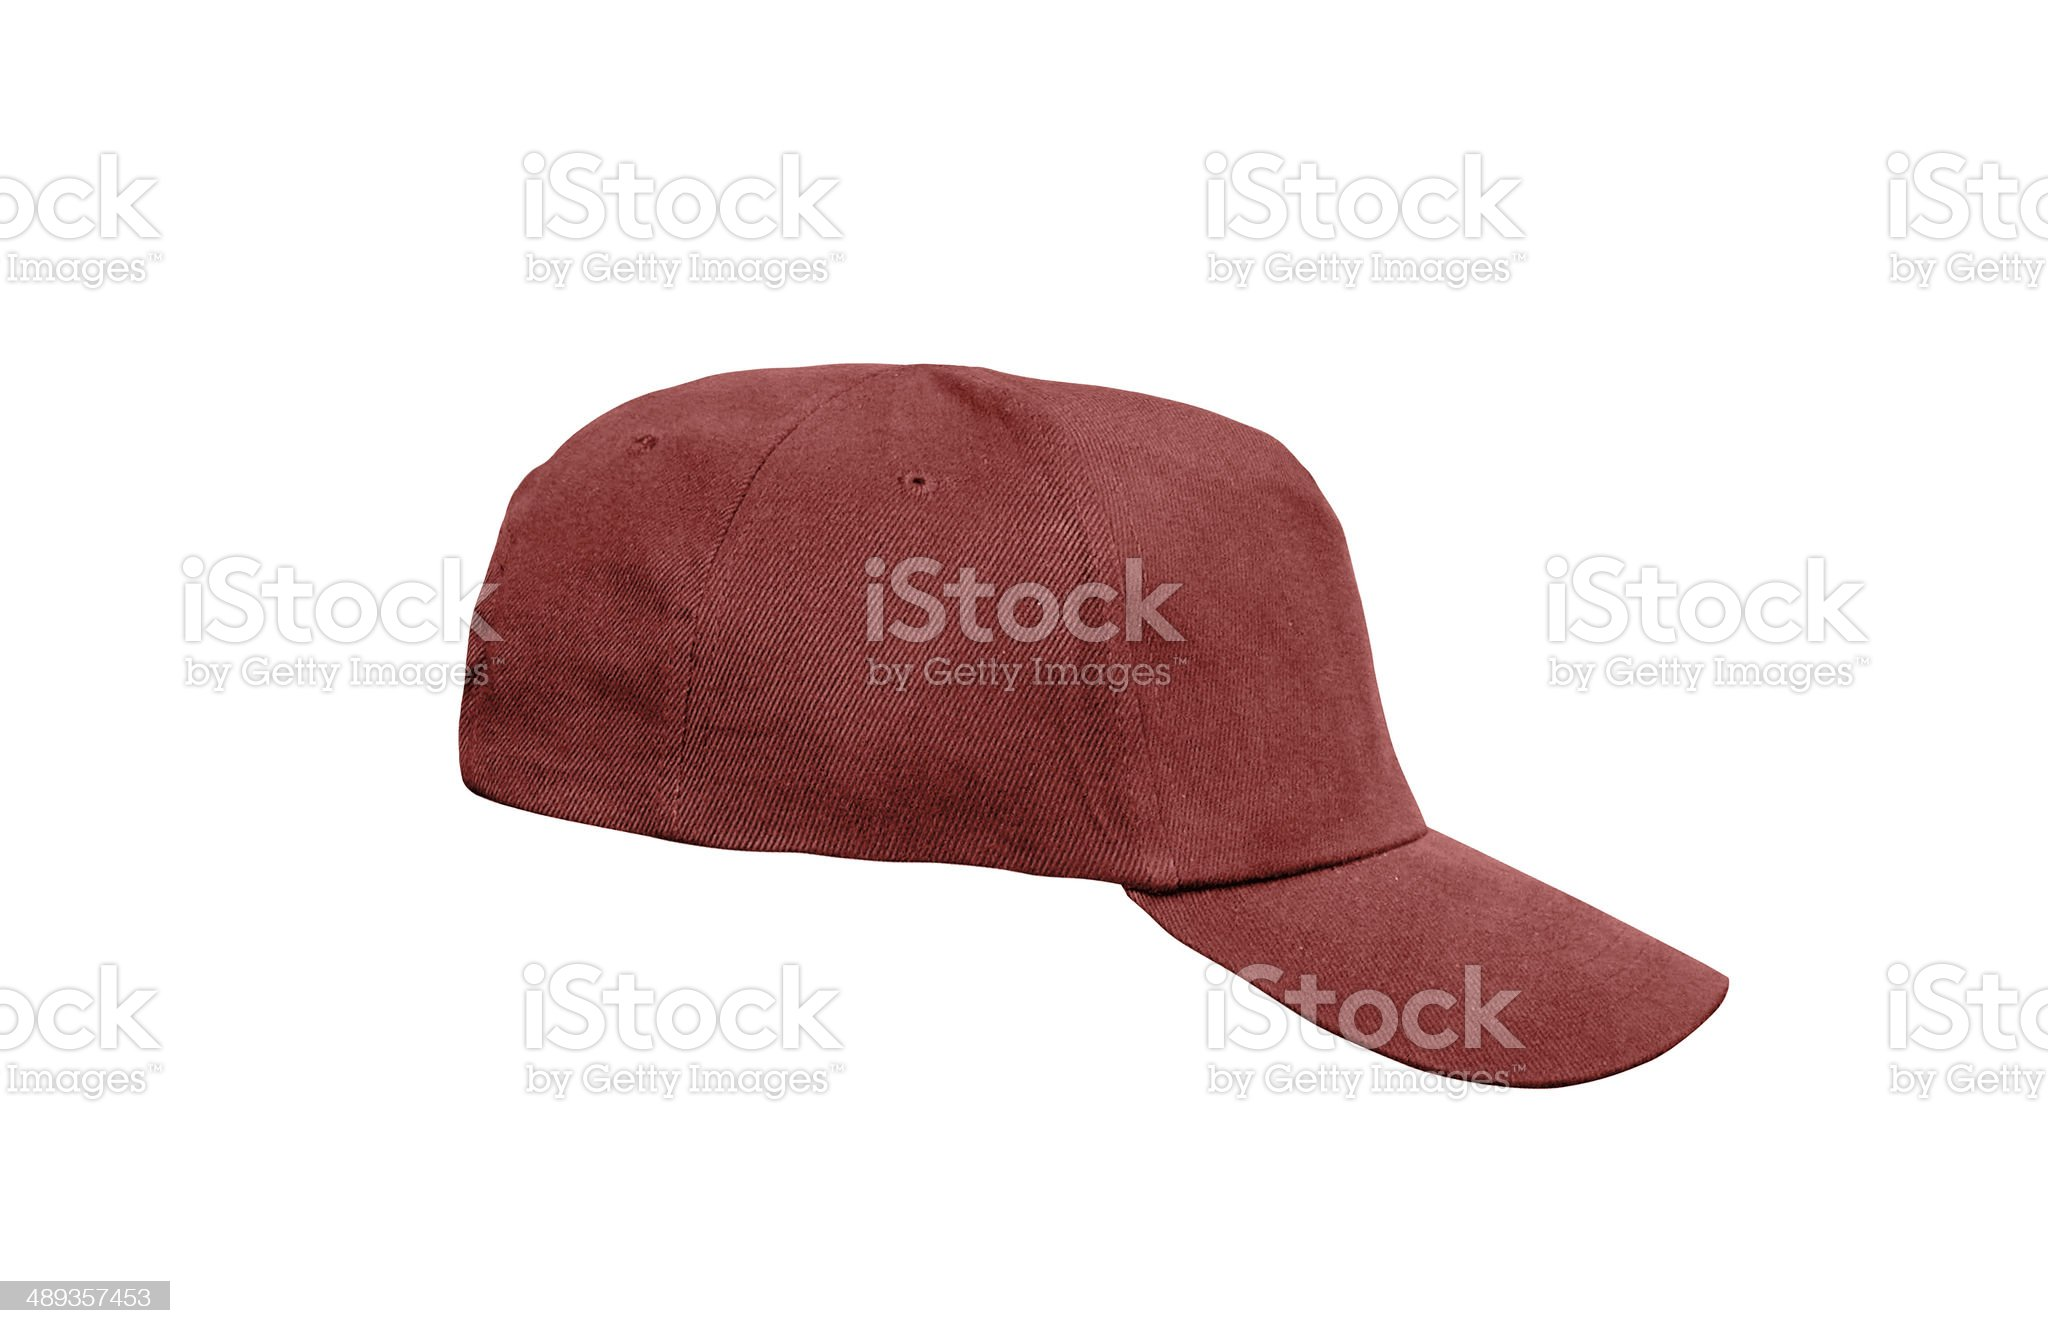 red hat royalty-free stock photo